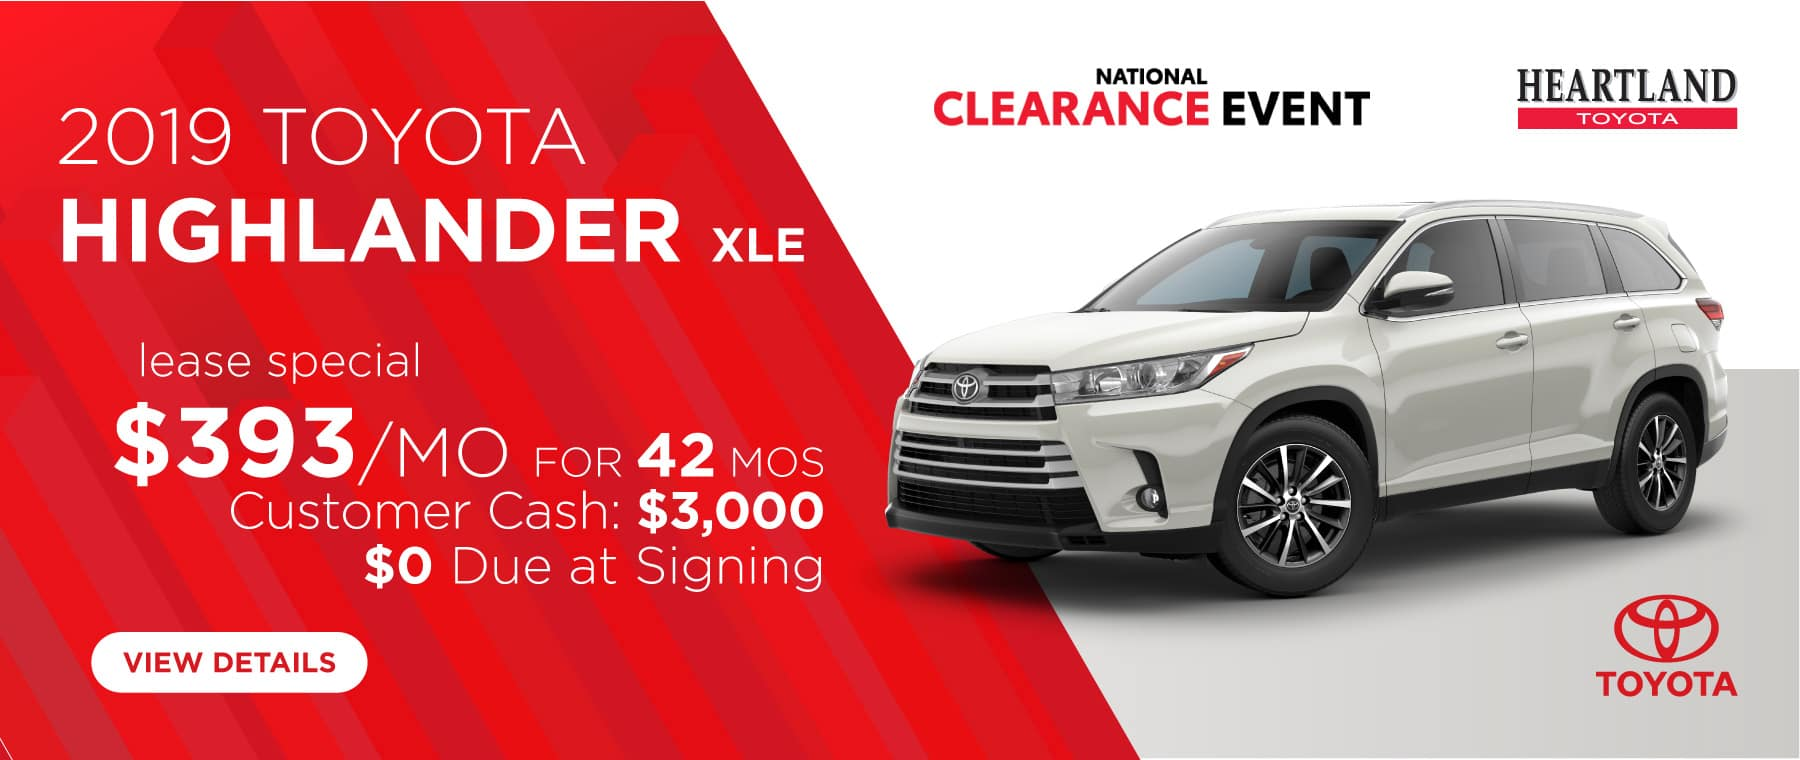 2019 Toyota Highlander XLE $393/mo. For 42 months* $0 Due at Signing  Customer Cash: $3,000   *Offer valid on 2019 Toyota Highlander XLE (6953), gas models only, hybrids are excluded. $393 per mo. for 42 months. Lease with $0 due at signing; includes a $695 acquisition fee. Valid on VIN: 5TDJZRFH8KS596034, 5TDJZRFH2KS596708, 5TDJZRFH2KS985302, 5TDJZRFH8KS983456, 5TDJZRFH6KS989904. MSRP $41,975. Deal #403734. Plus, Customer Cash: $3,000. Lease is through US Bank. Subject to credit approval. No Security deposit required. Excludes taxes, title, and fees. 42 monthly payments required. Not all lessees will qualify for lowest payment through participating lender. Residency restrictions apply. Lessee responsible for mileage over 10,000 miles per year at $0.15/mile per year. Option to purchase at lease end. A negotiable dealer documentary service fee of up to $150 may be added to the sale price or capitalized cost. Offer expires 9/3/2019.